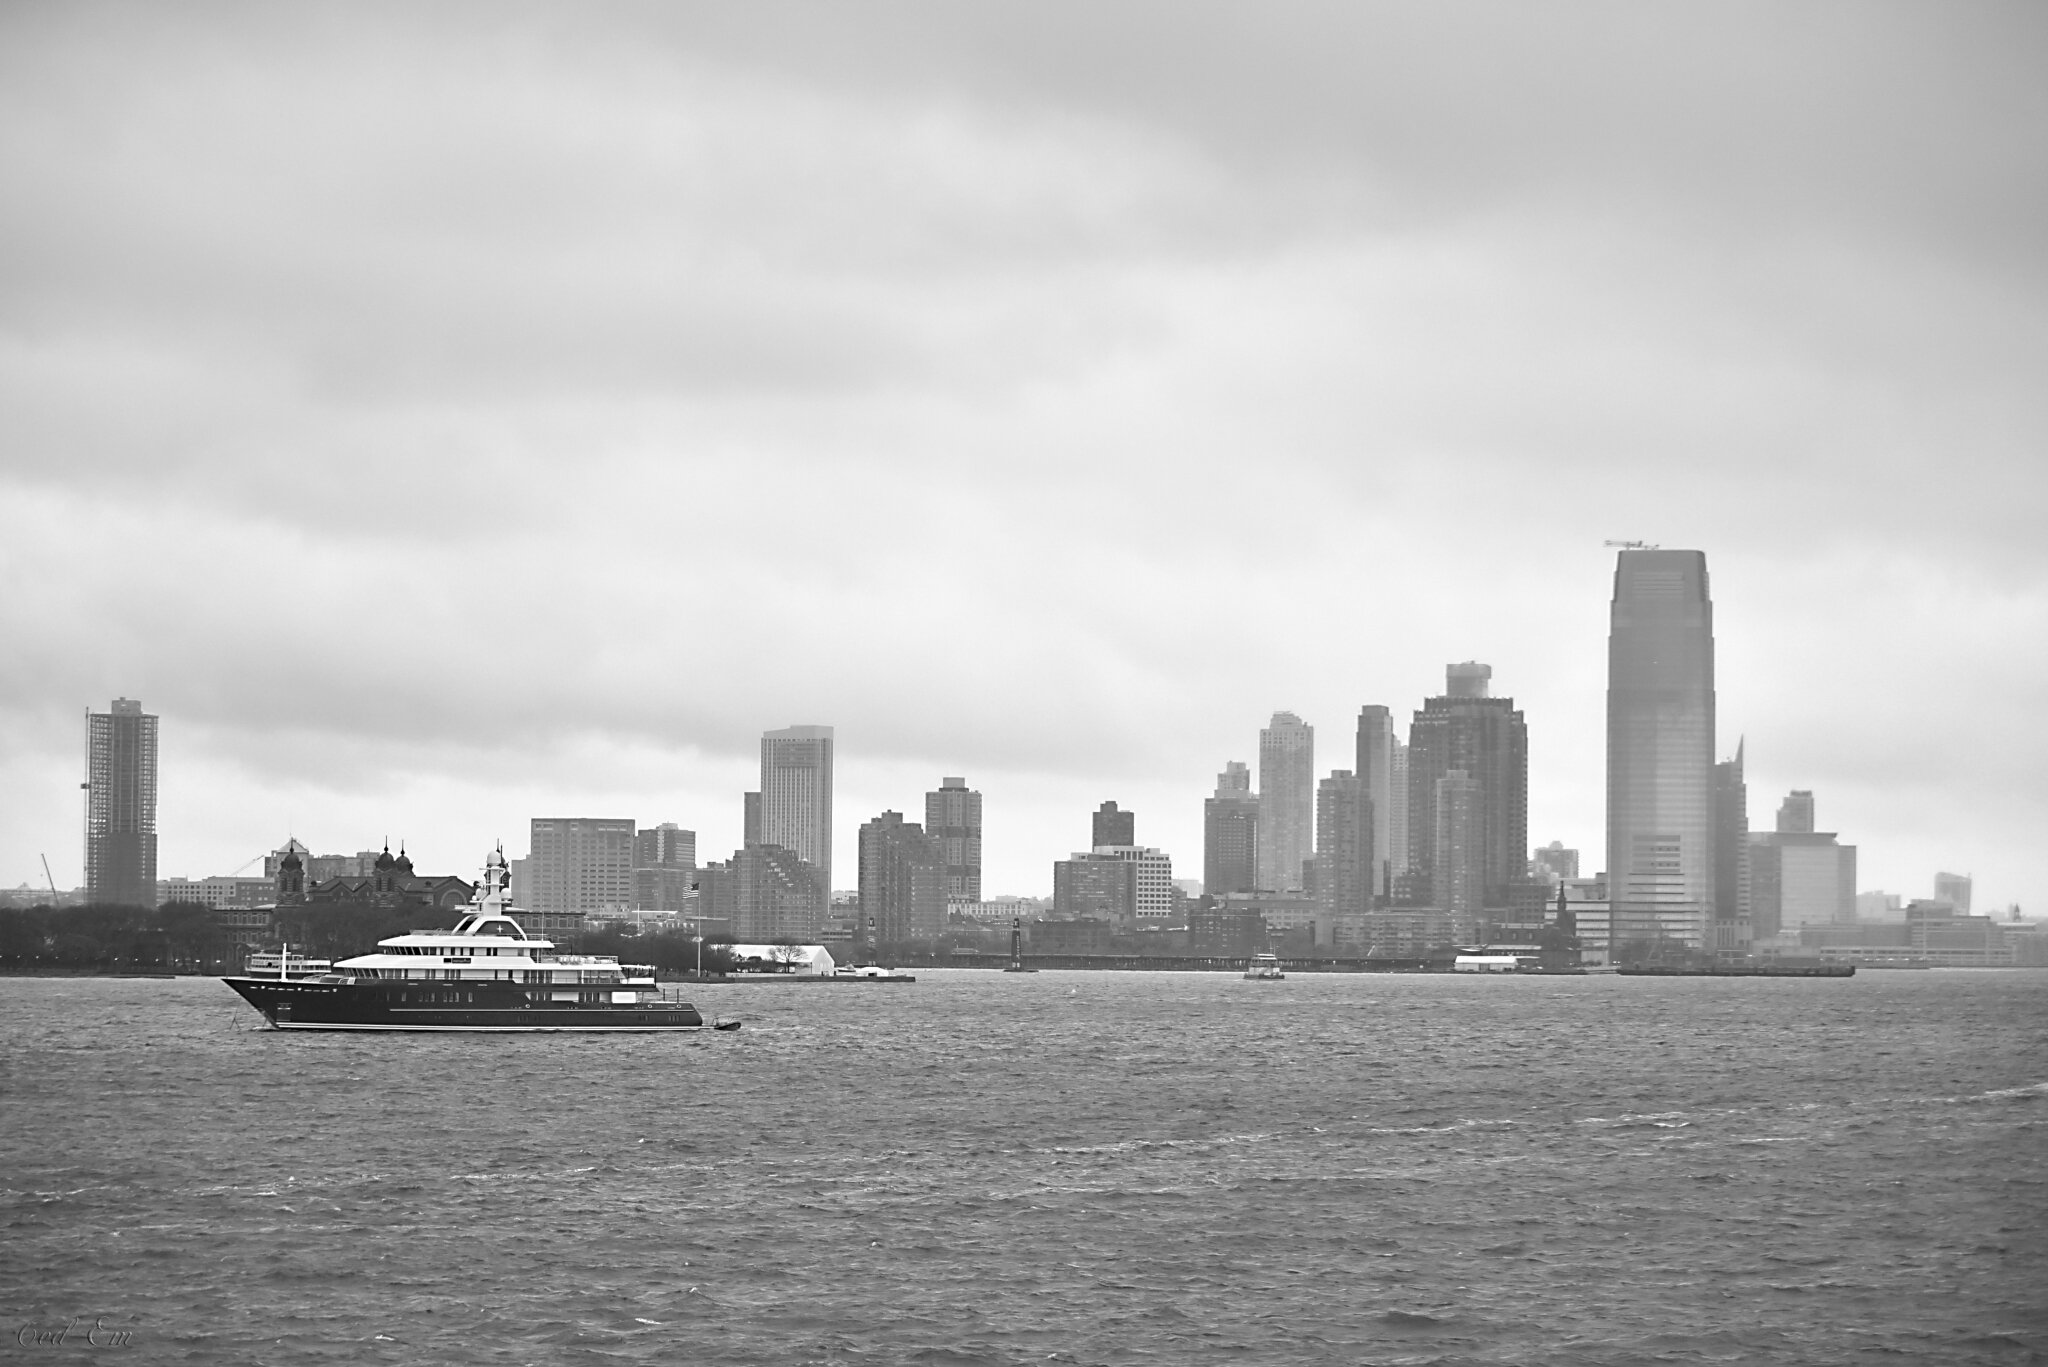 On the ferry (7)